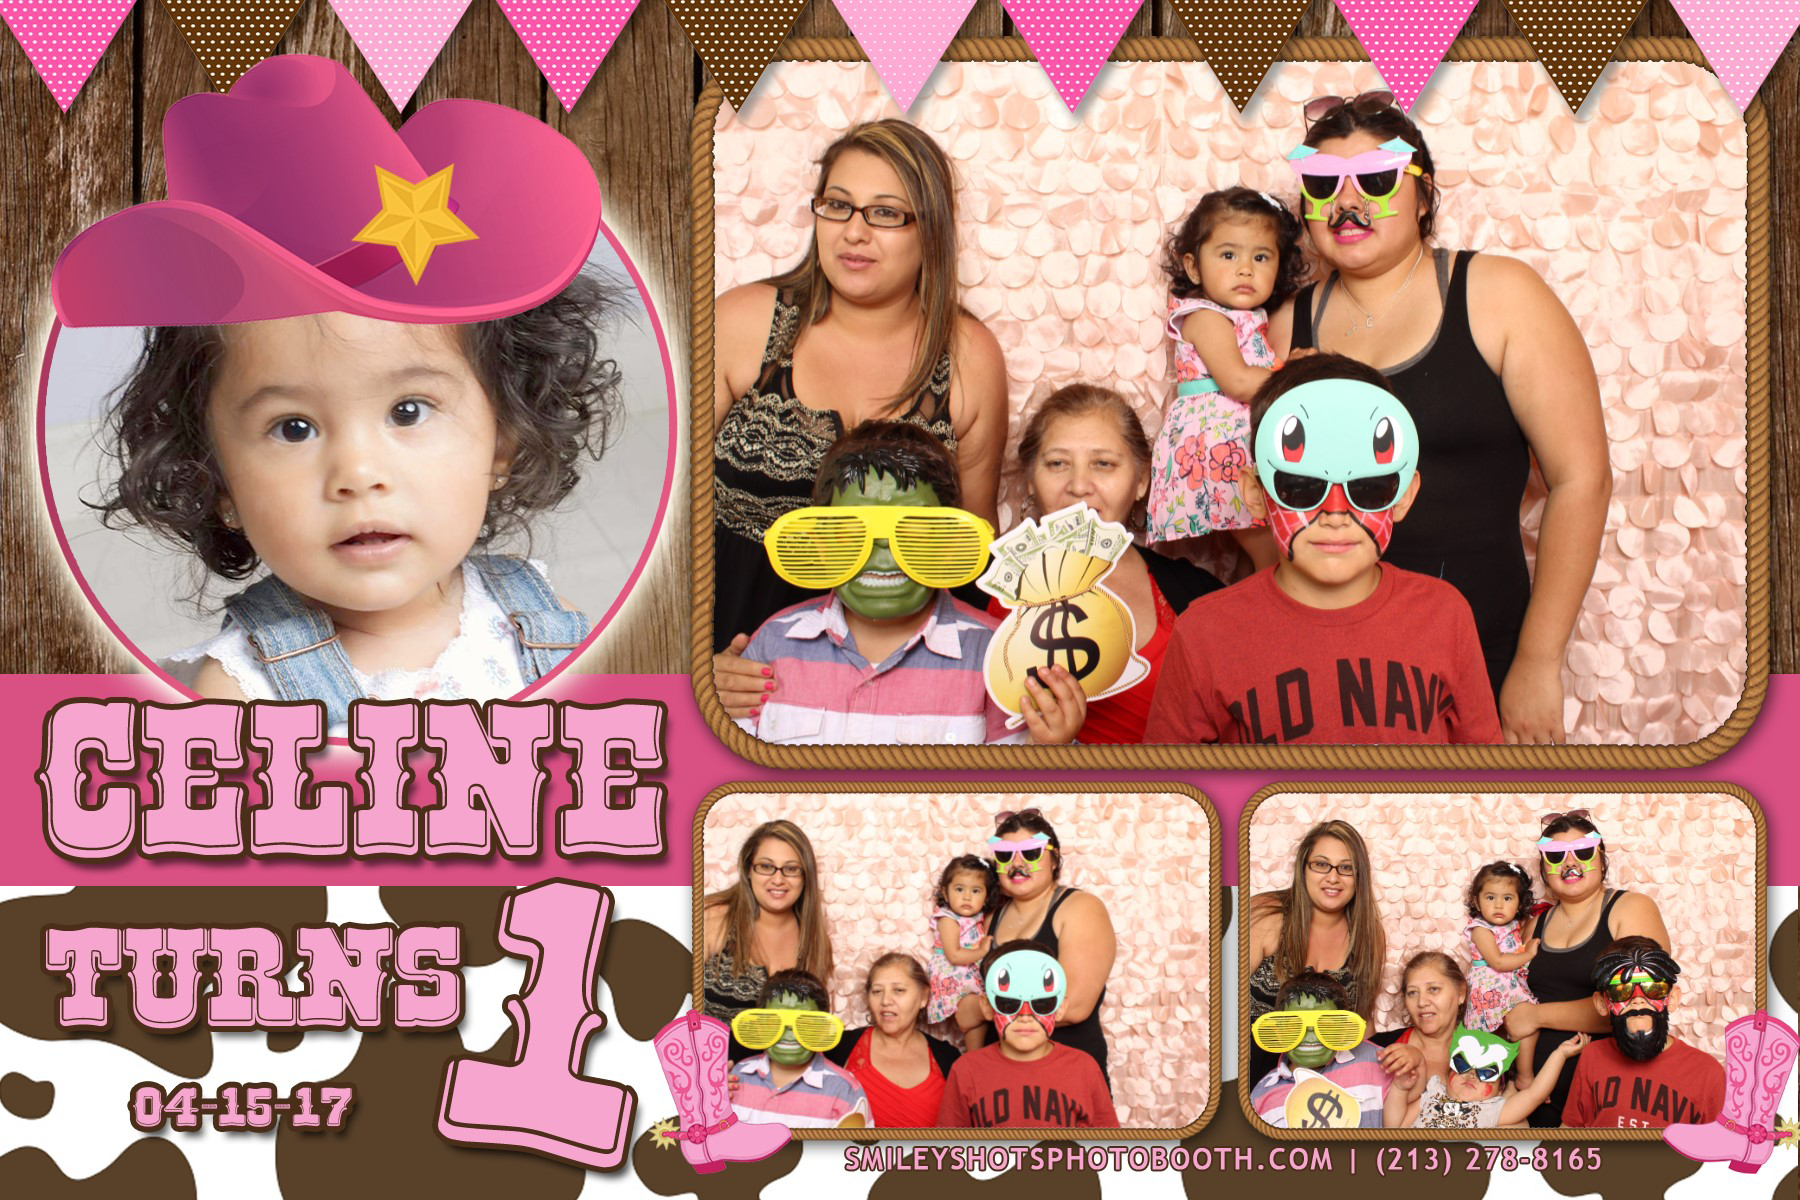 Celine turns 1 Smiley Shots Photo Booth Photobooth (50).png